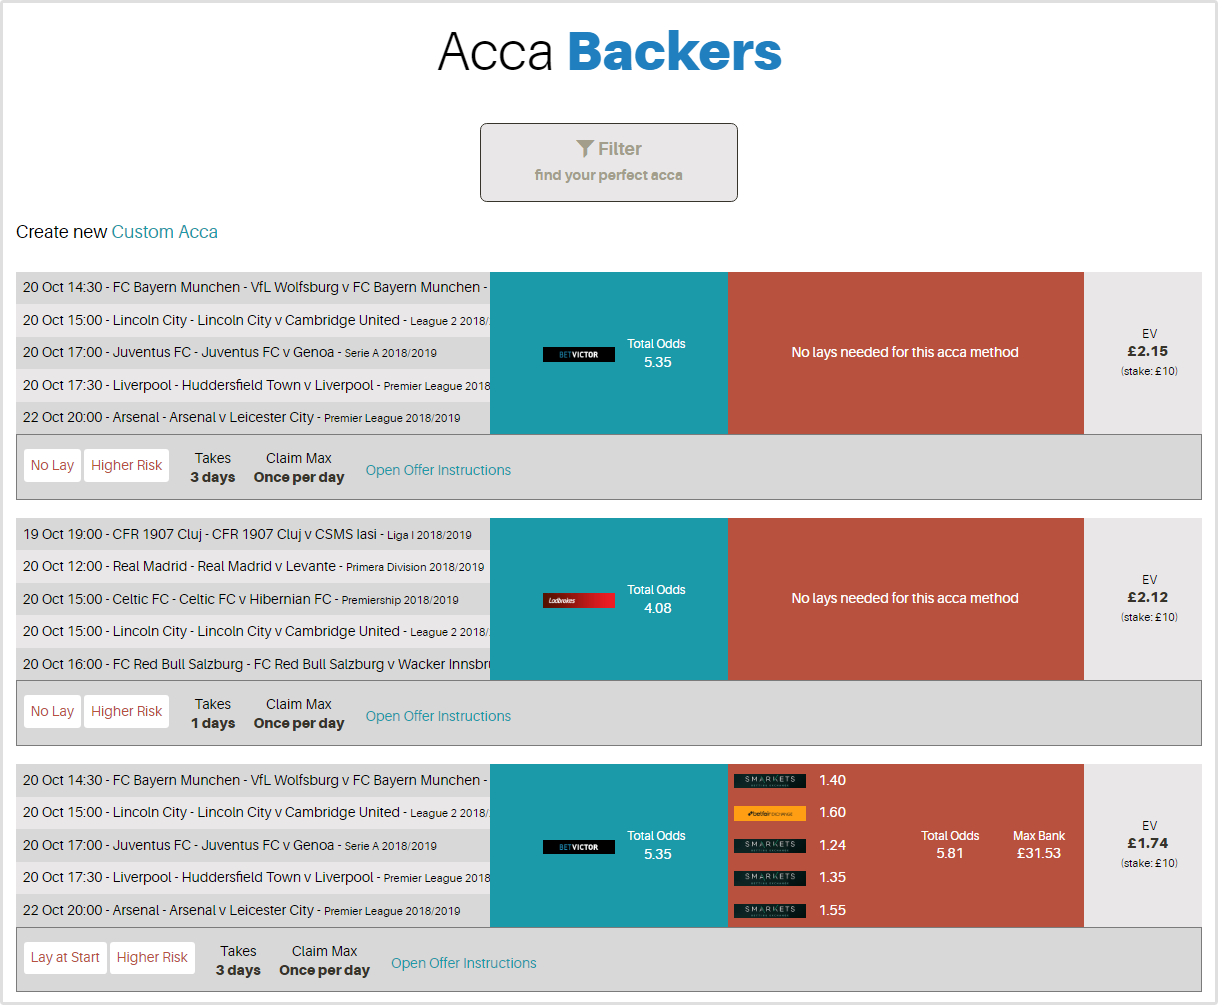 accabackers